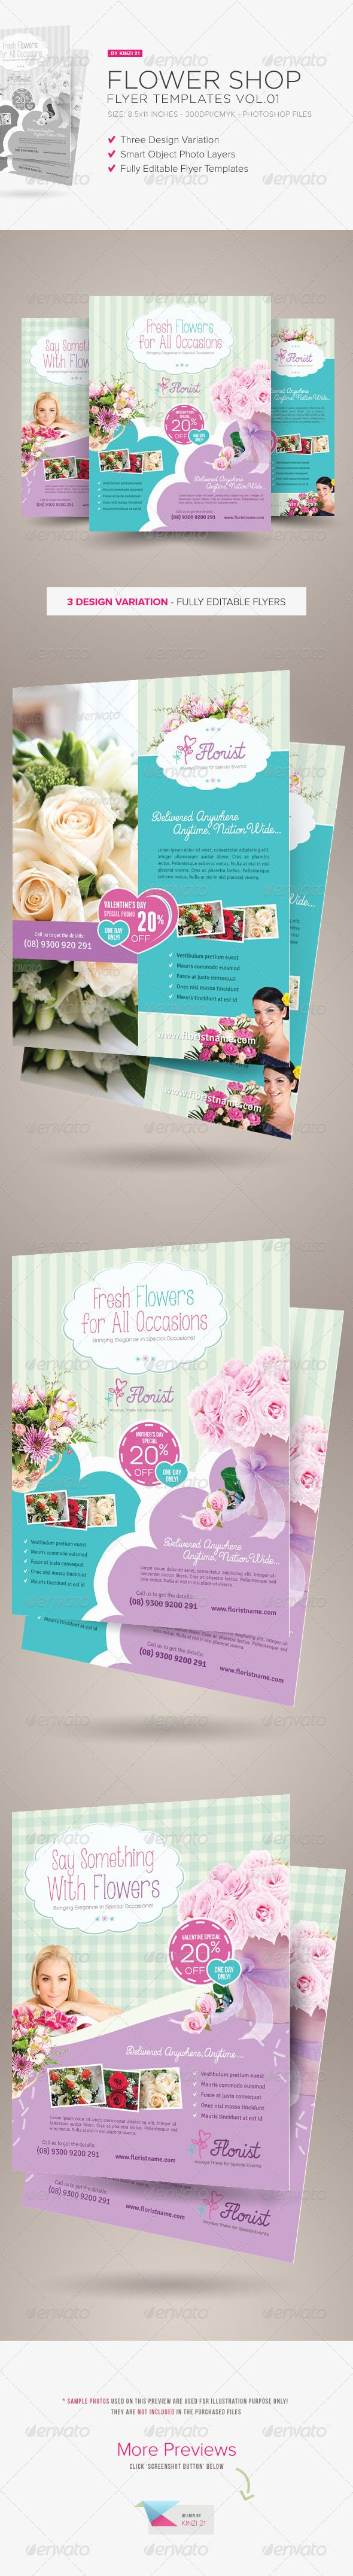 Flower Shop Flyer Templates are fully-editable design  templates created for sale on Graphic River. More info of the templates and how to get the sourcefiles can be found on this page:  http://graphicriver.net/item/flower-shop-flyer-templates/6566352?r=kinzi21